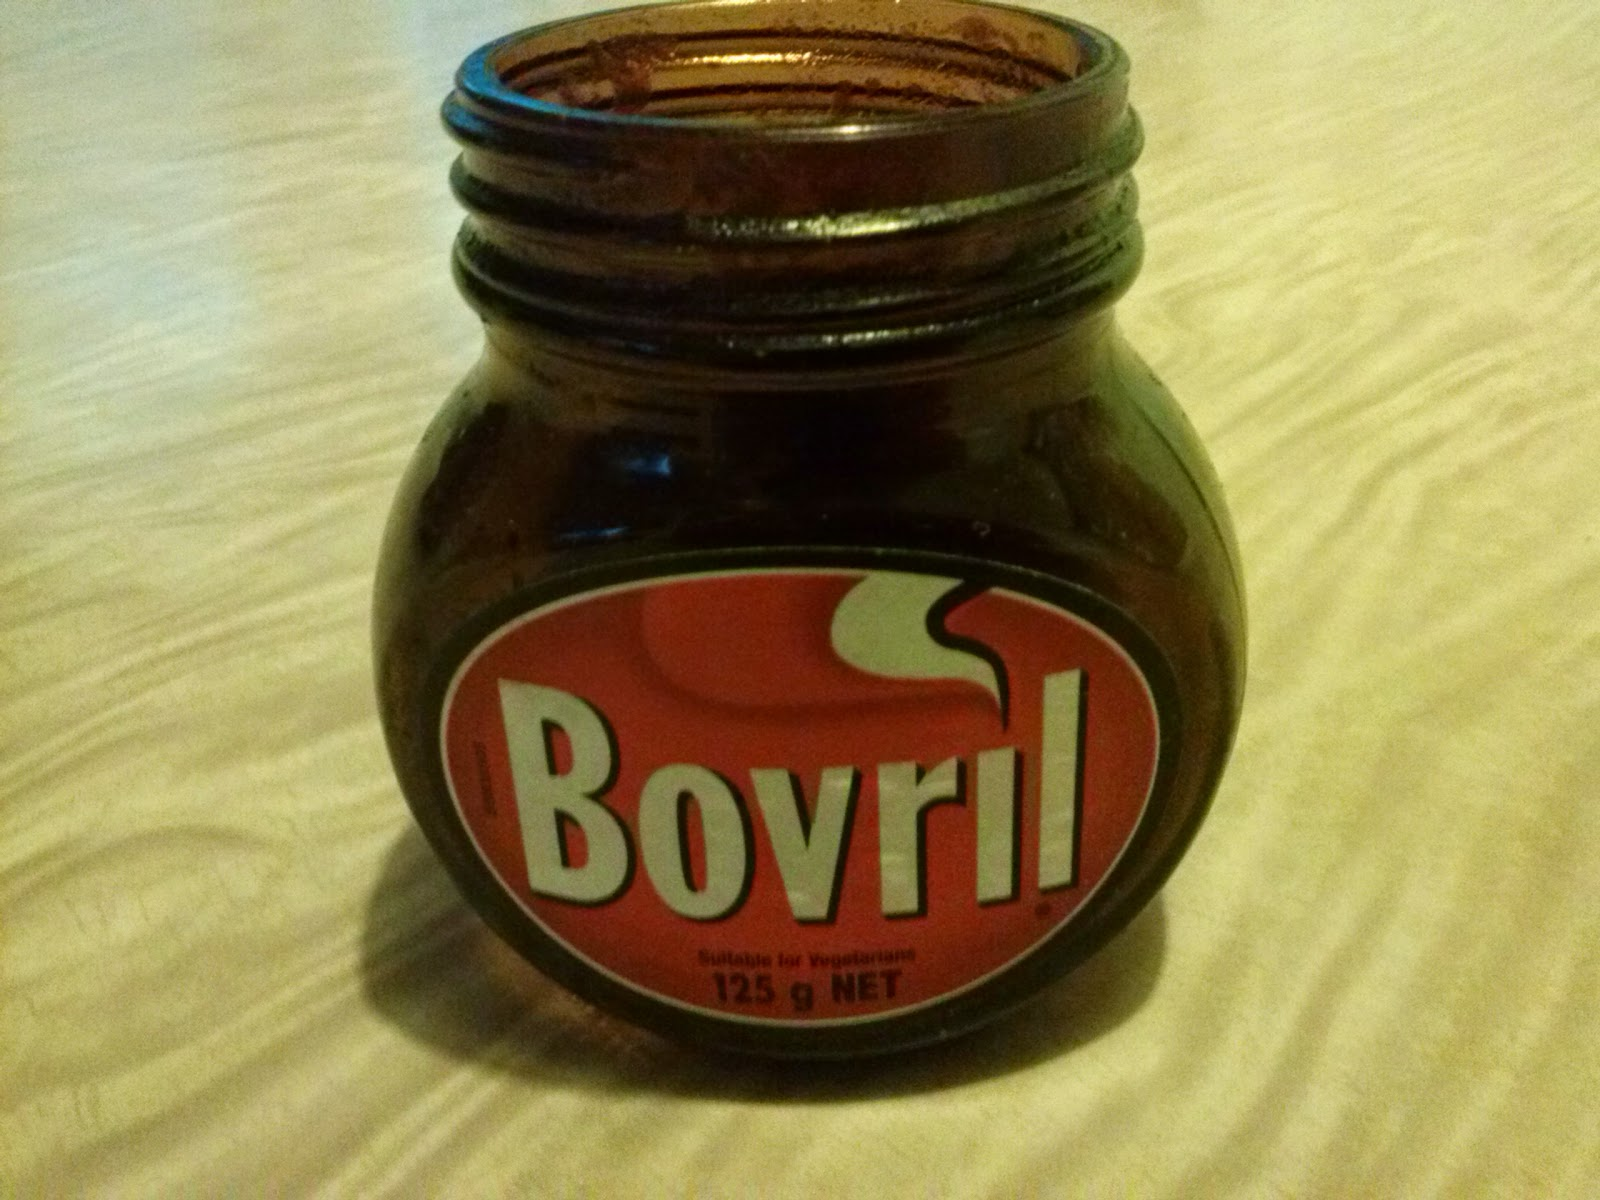 Good old beef tea; bovril